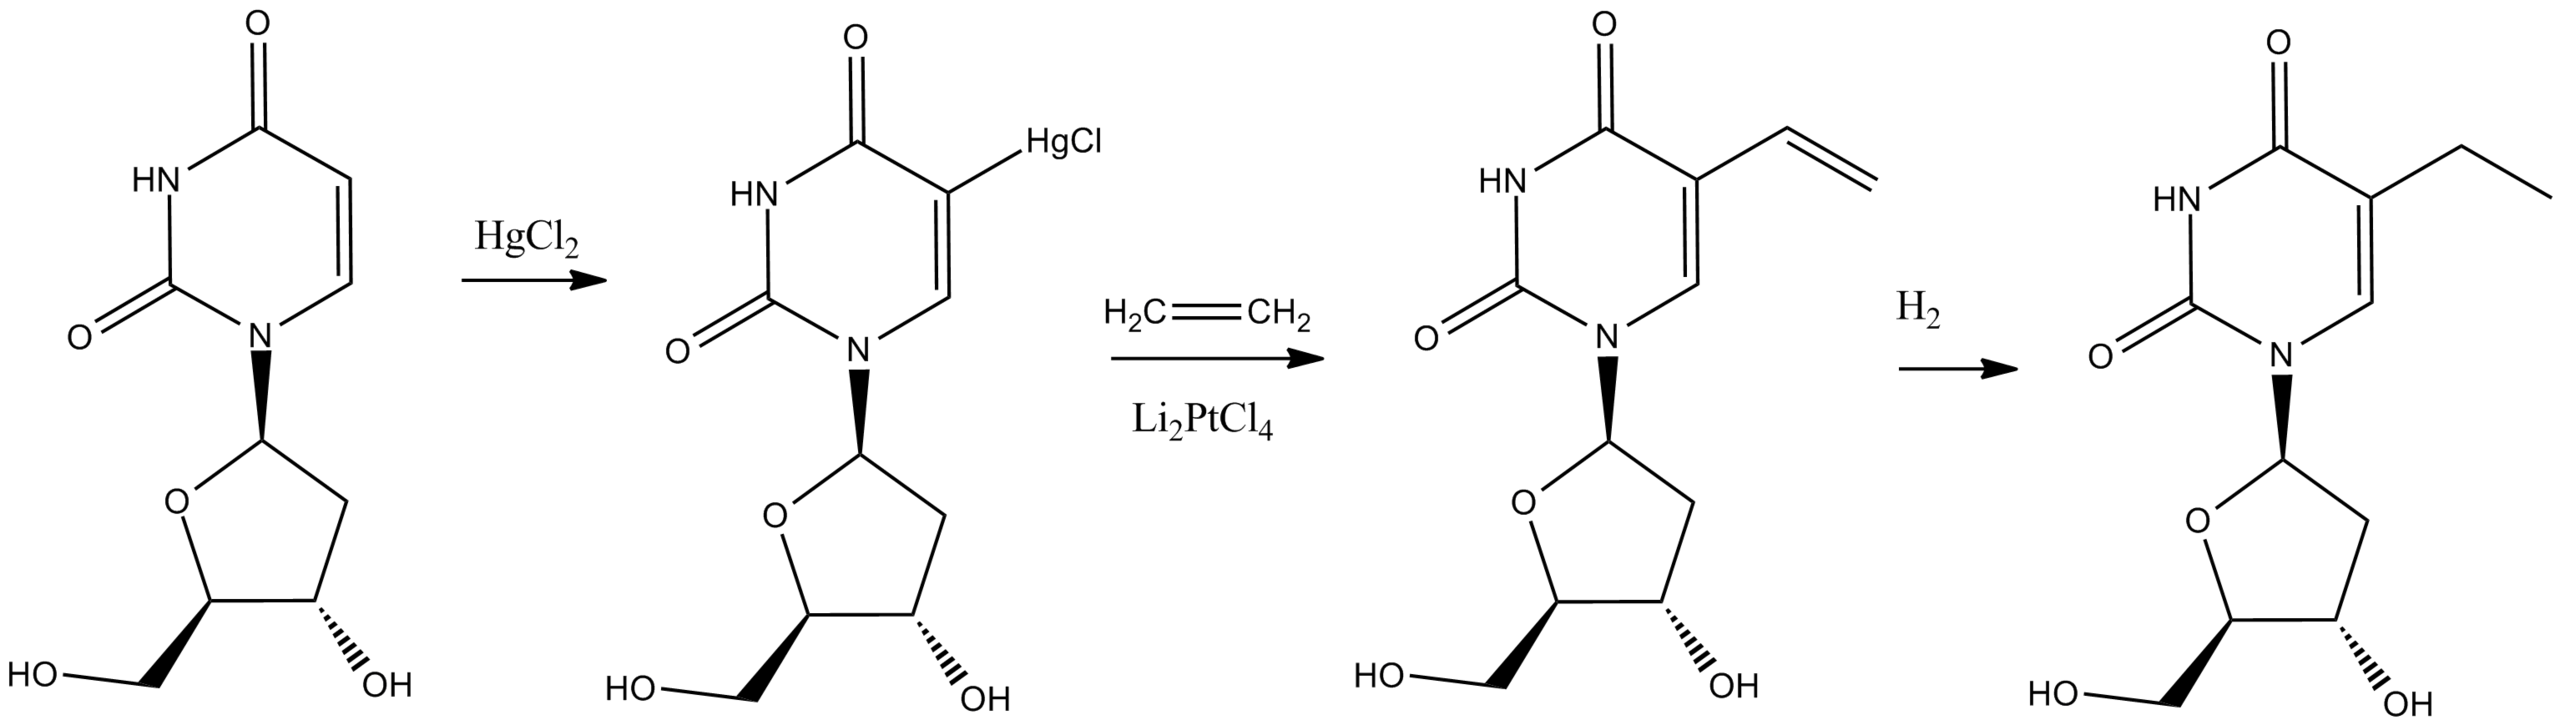 Edoxudine synthesis.png